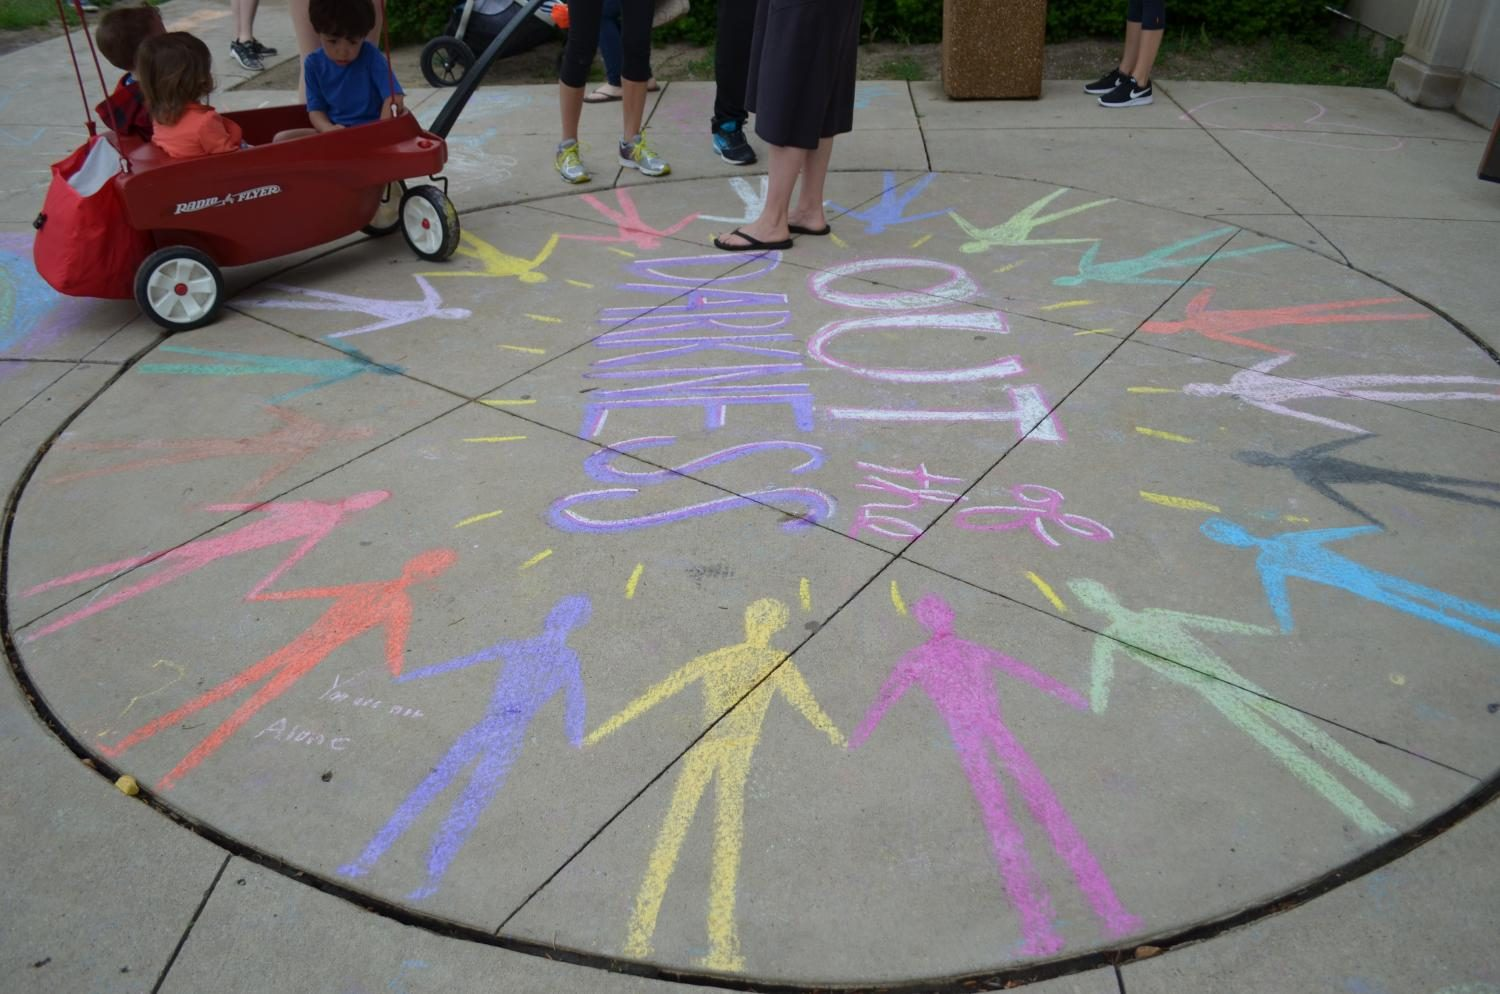 Gen Boyle '17 created chalk illustrations outside the Boll Center where the walk began. The drawings had themes of unity, love and positivity.